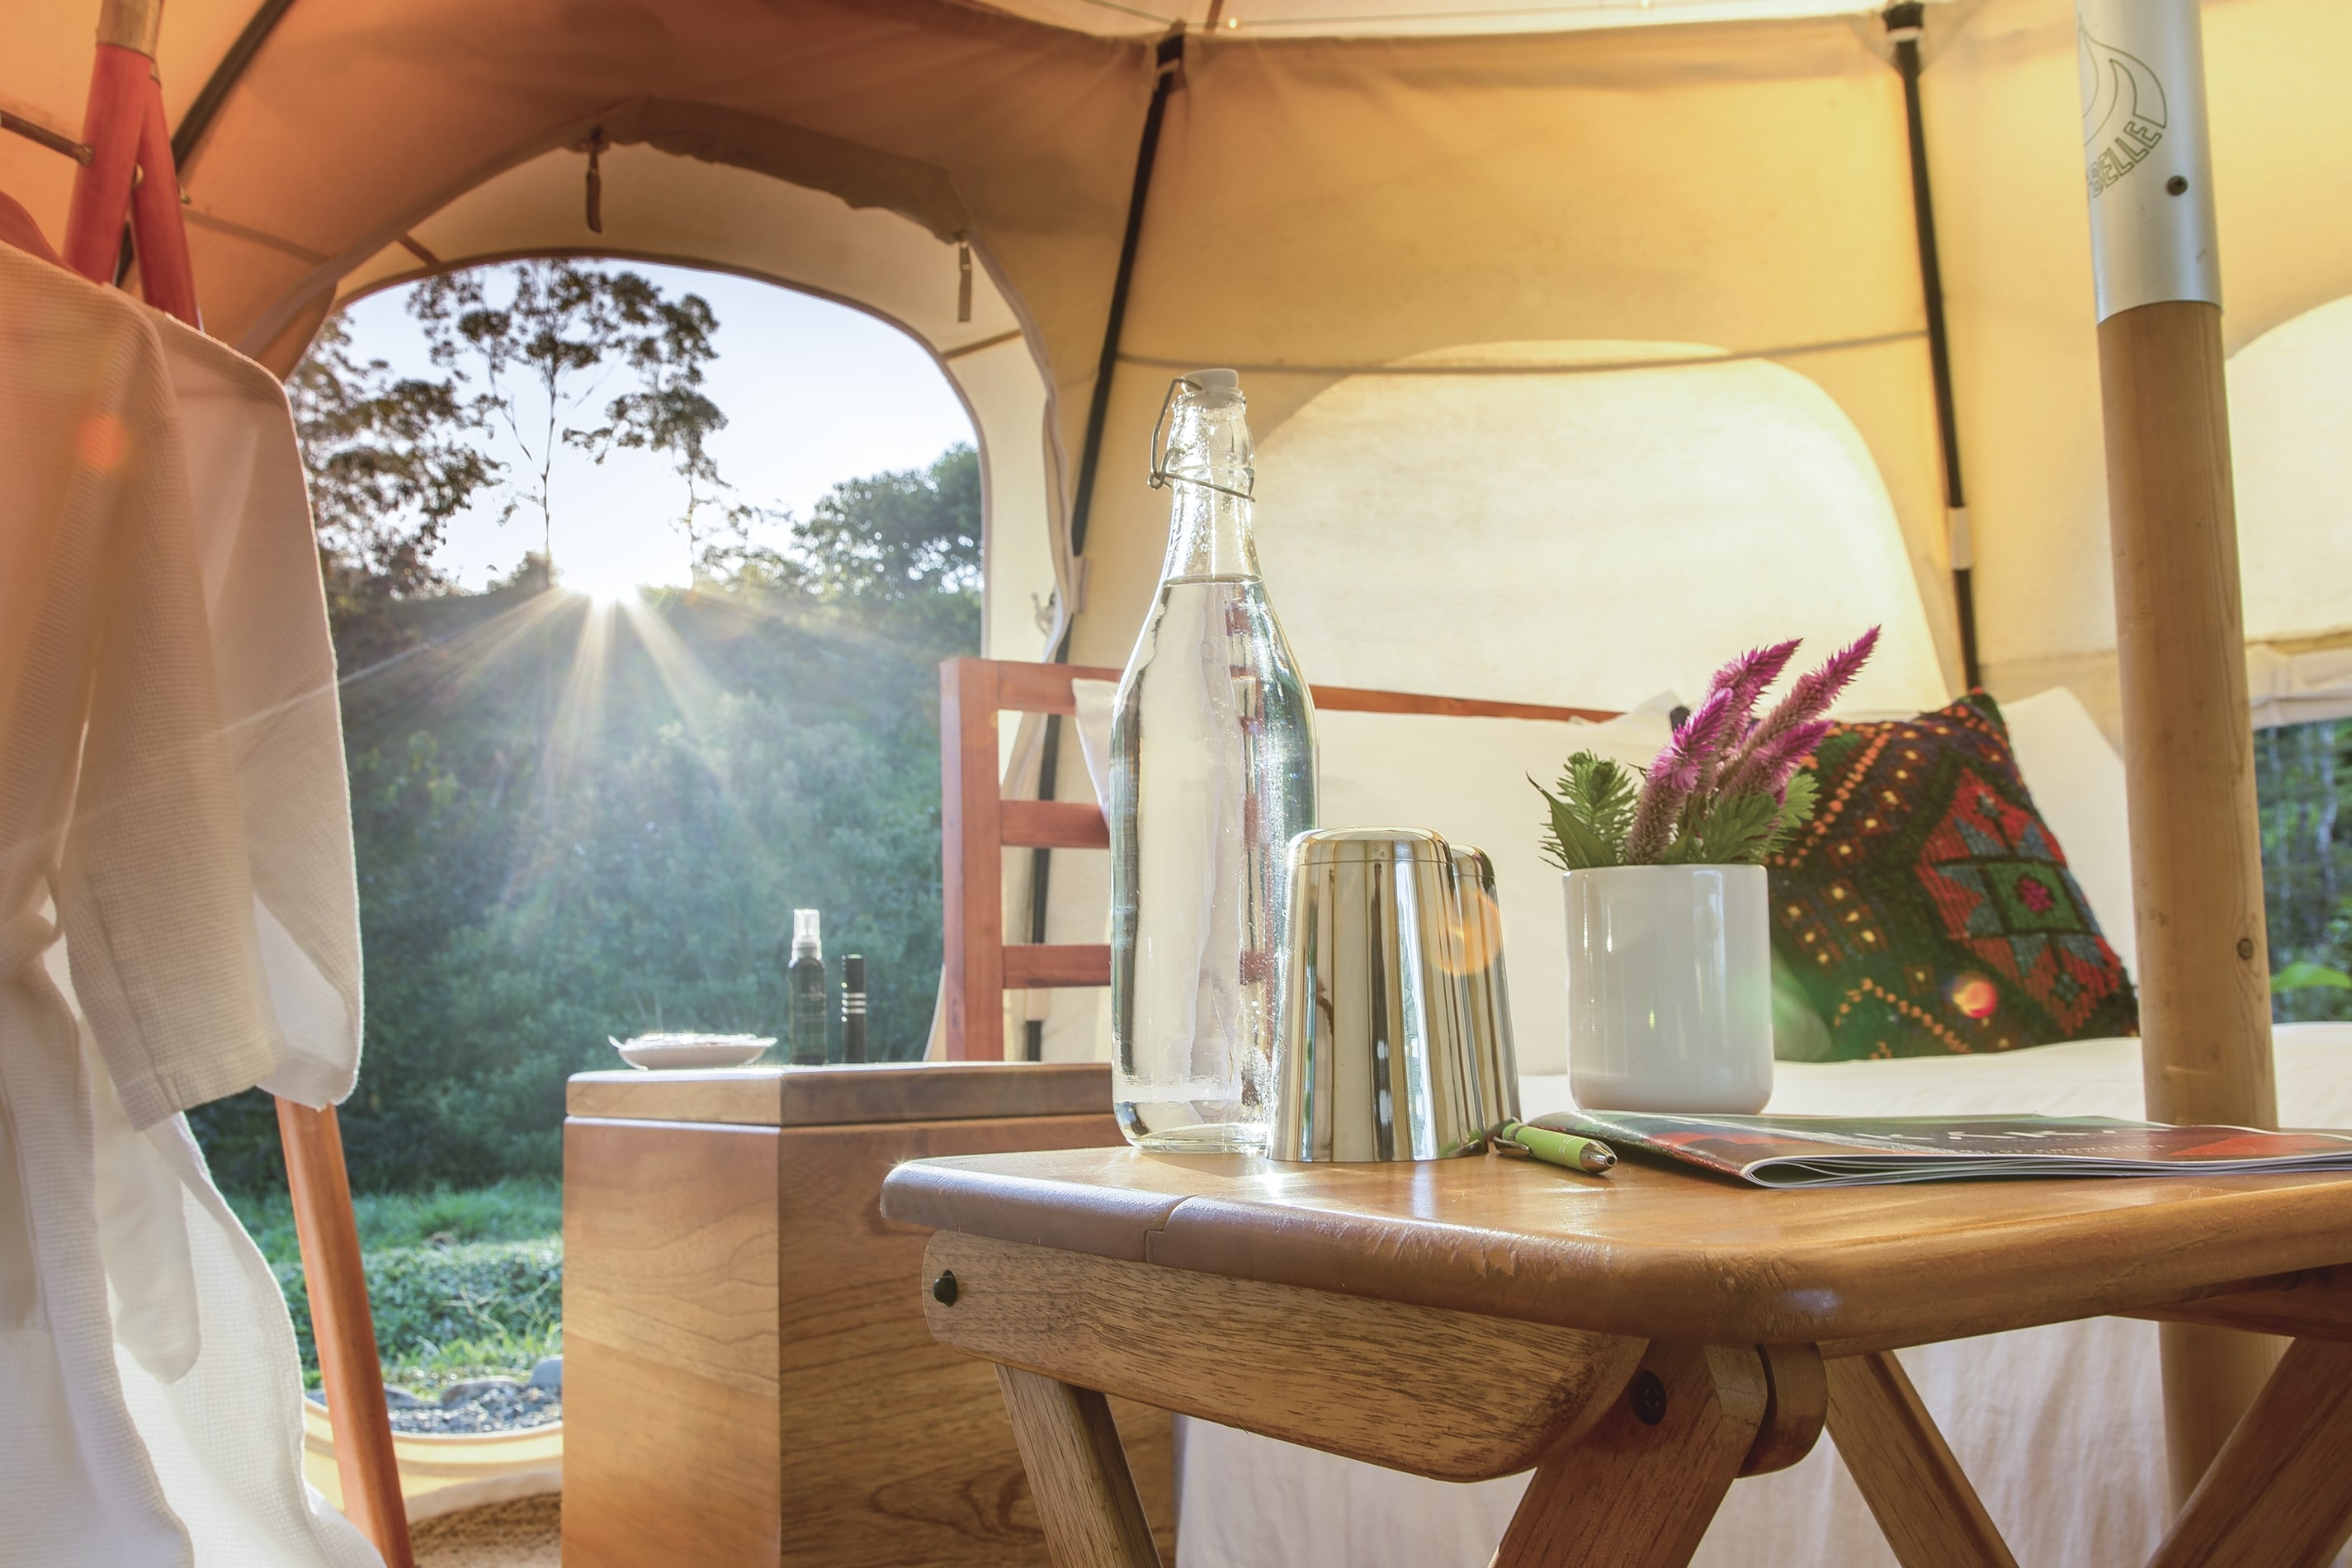 Luxury_Lotus_Belle_Tent_Interiors-0001.jpg